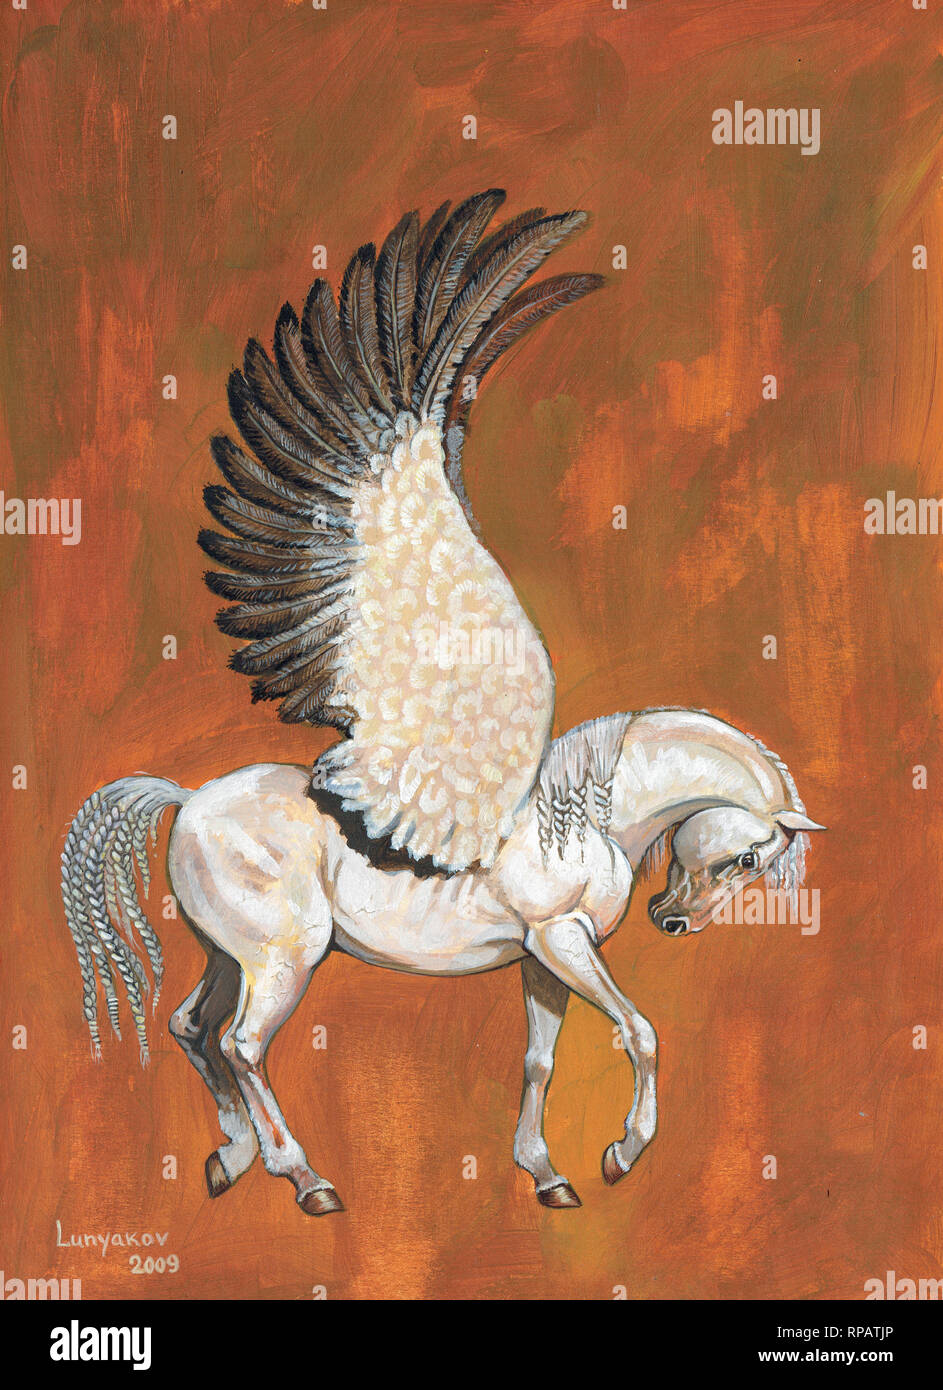 Pegasus Illustration White Horse With Wings Acrylic Picture Stock Photo Alamy